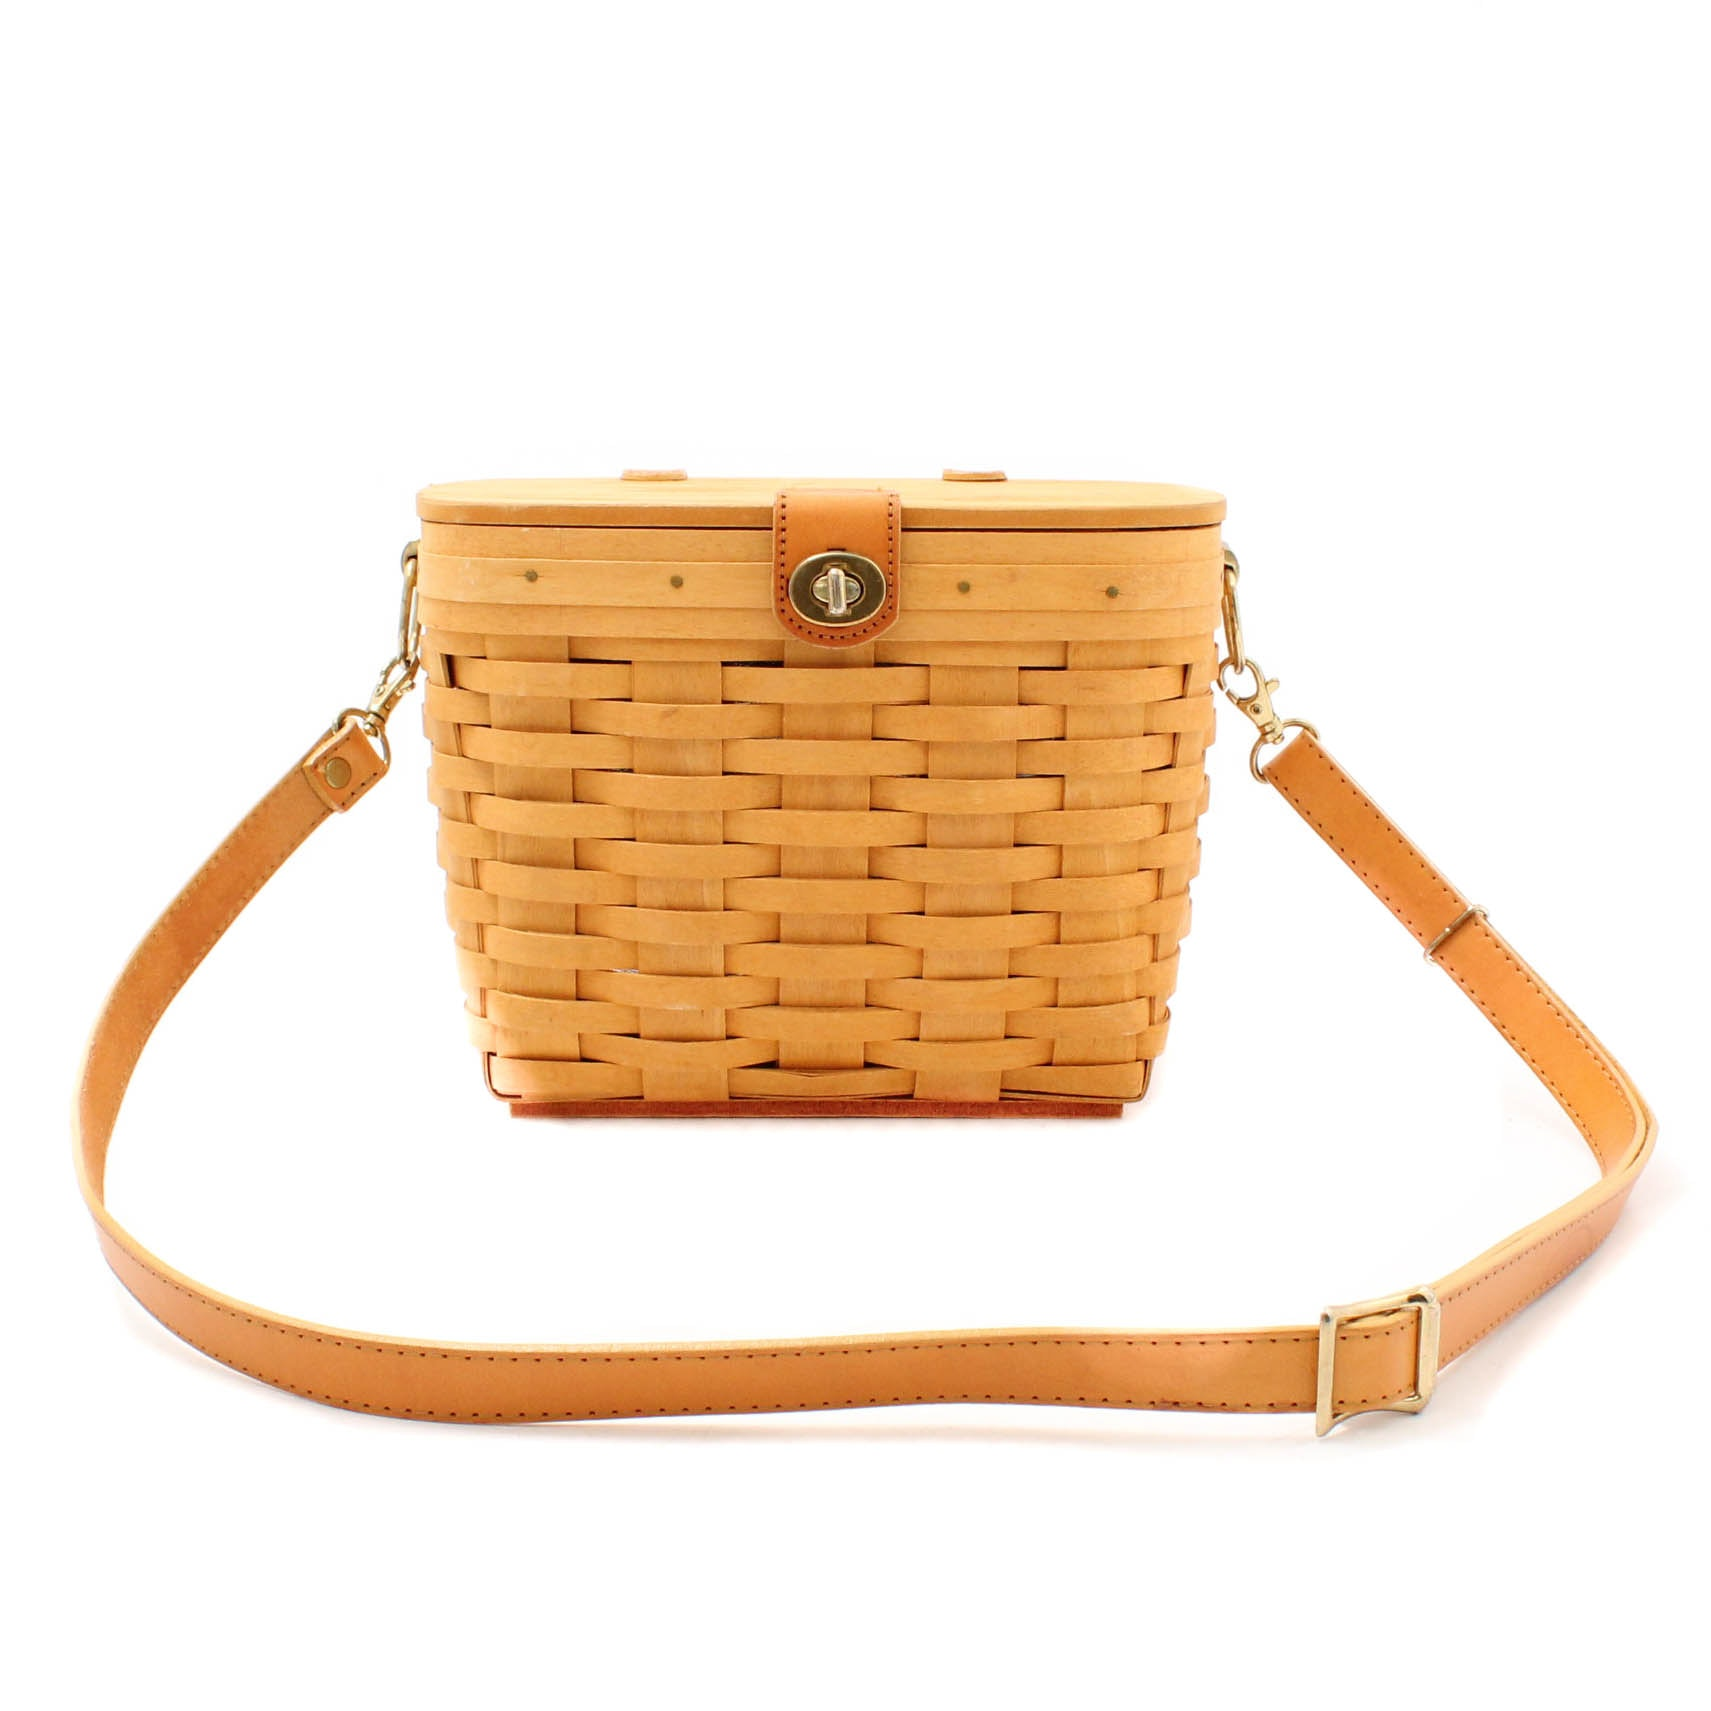 1998 Longaberger Handwoven Basketweave Shoulder Bag